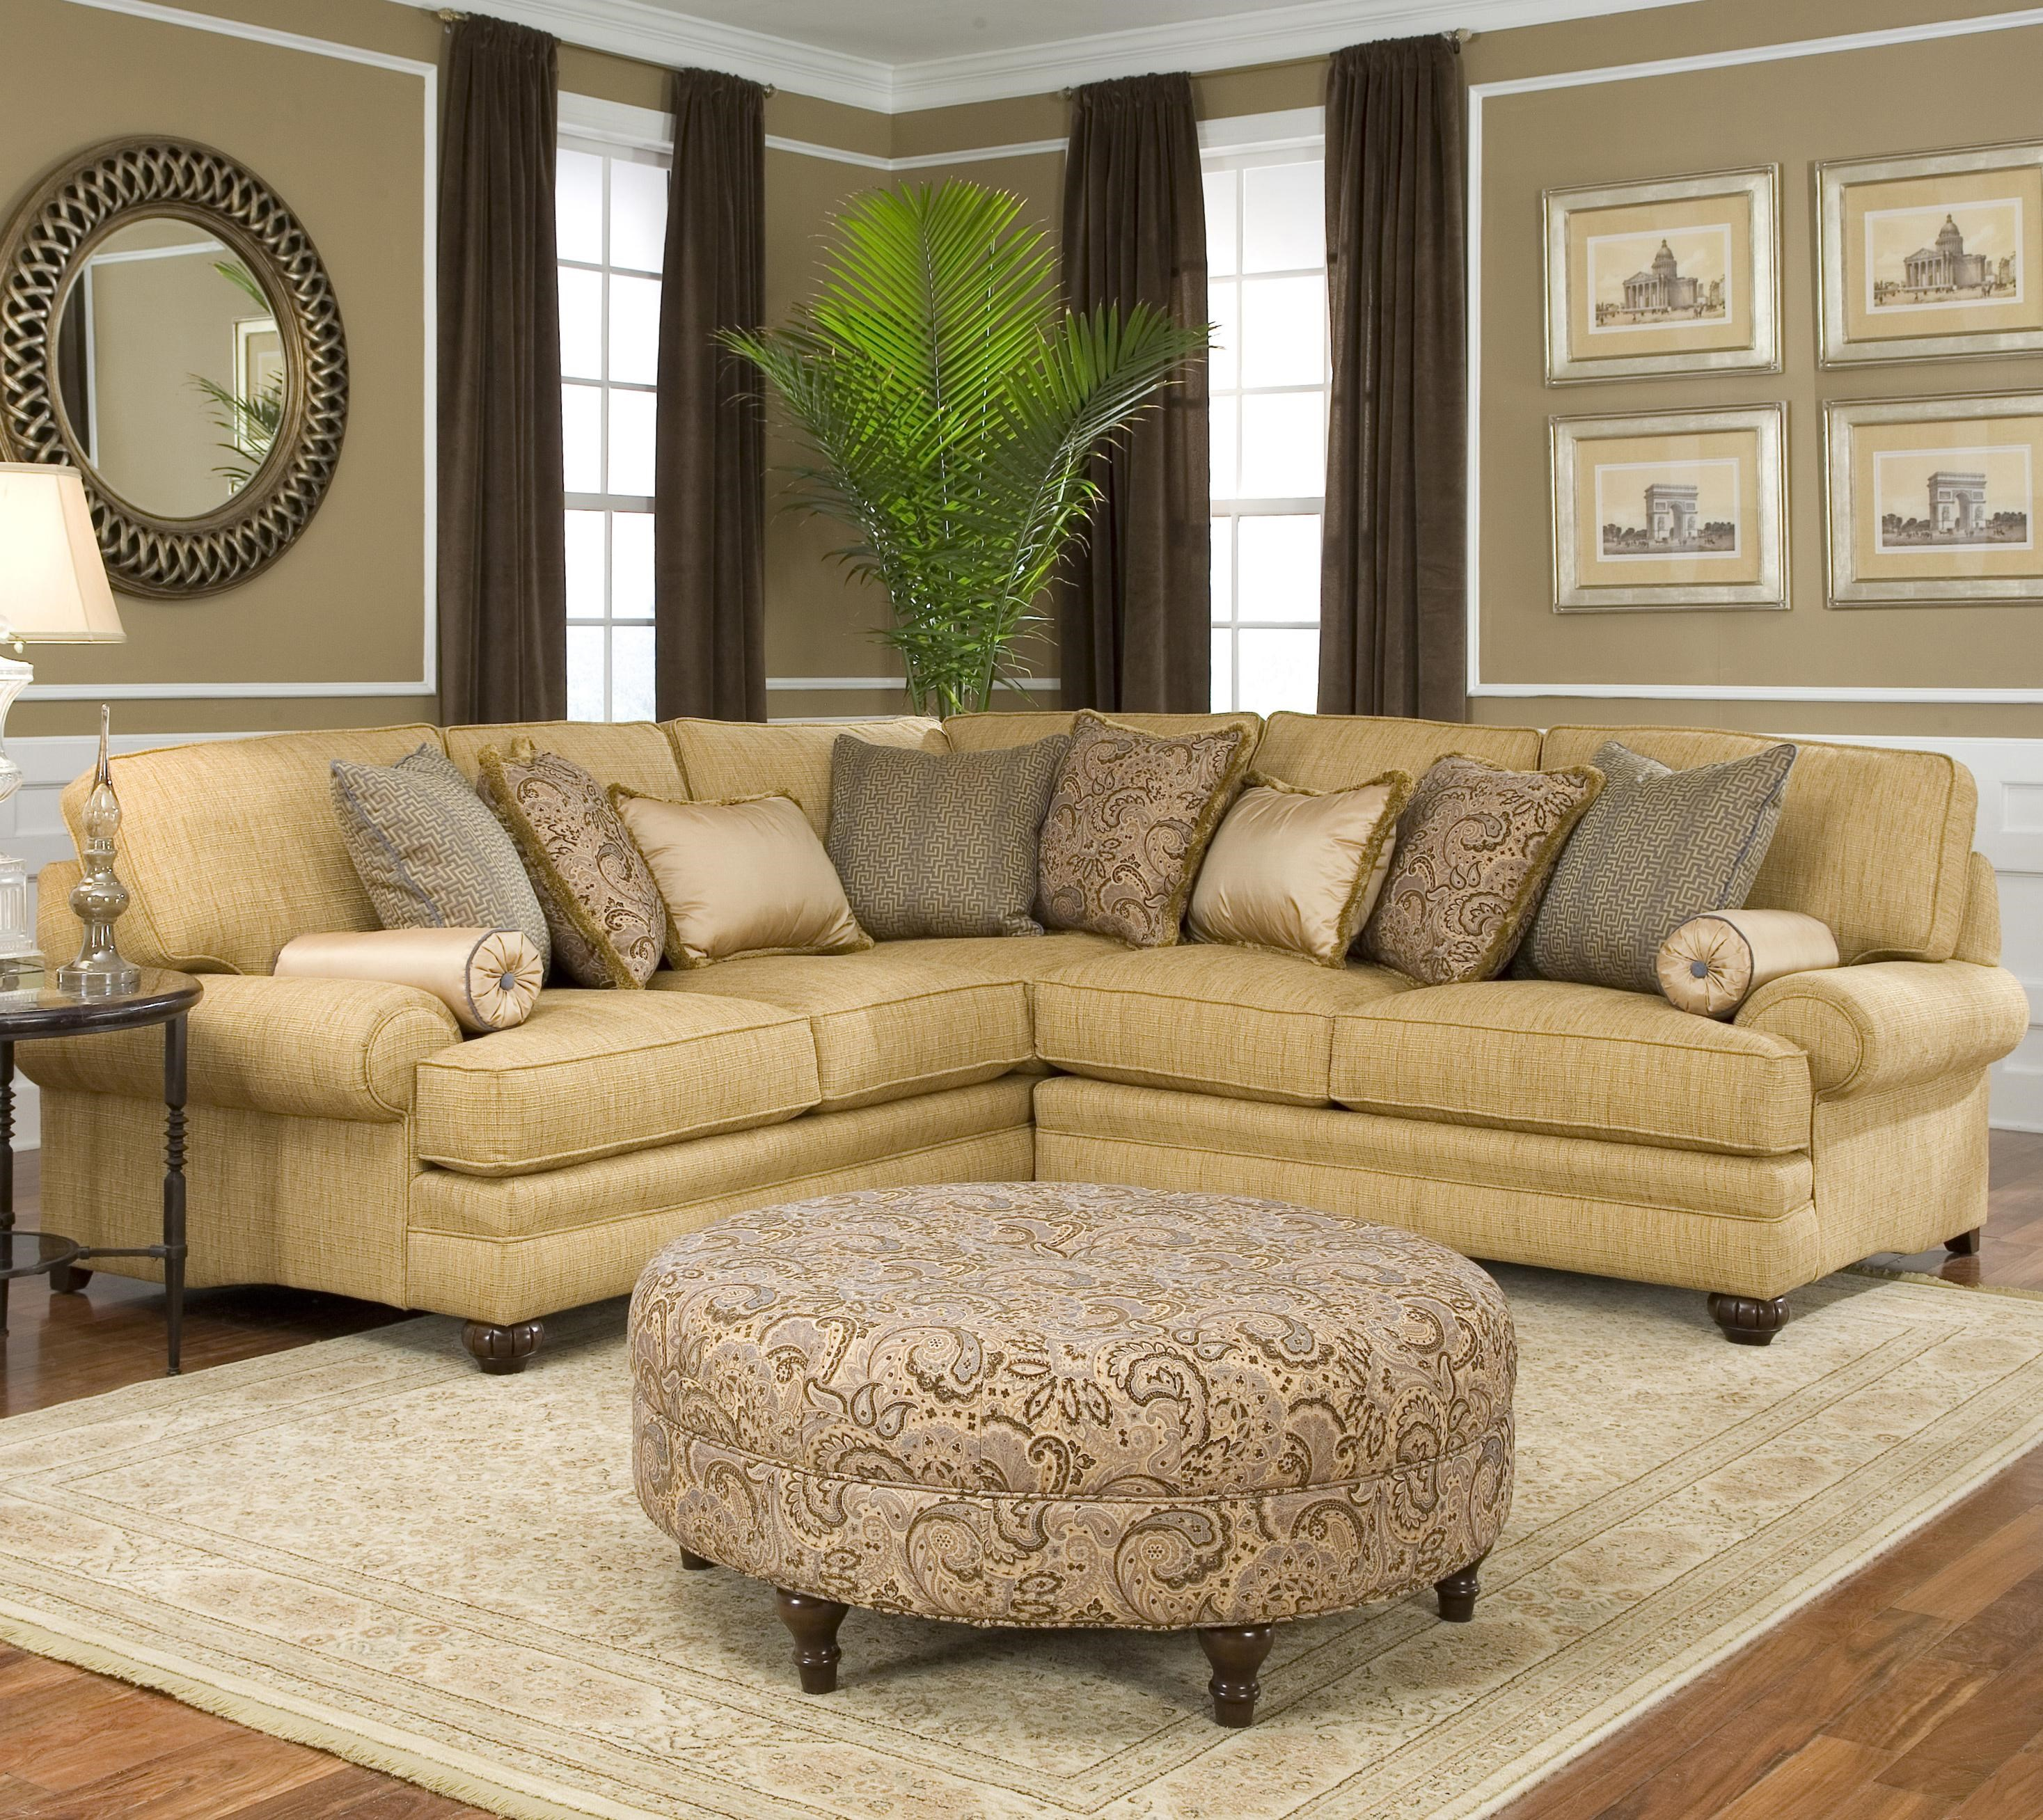 Smith Brothers 376 Traditional Styled Corner Sectional Sofa : corner sectional chair - Sectionals, Sofas & Couches